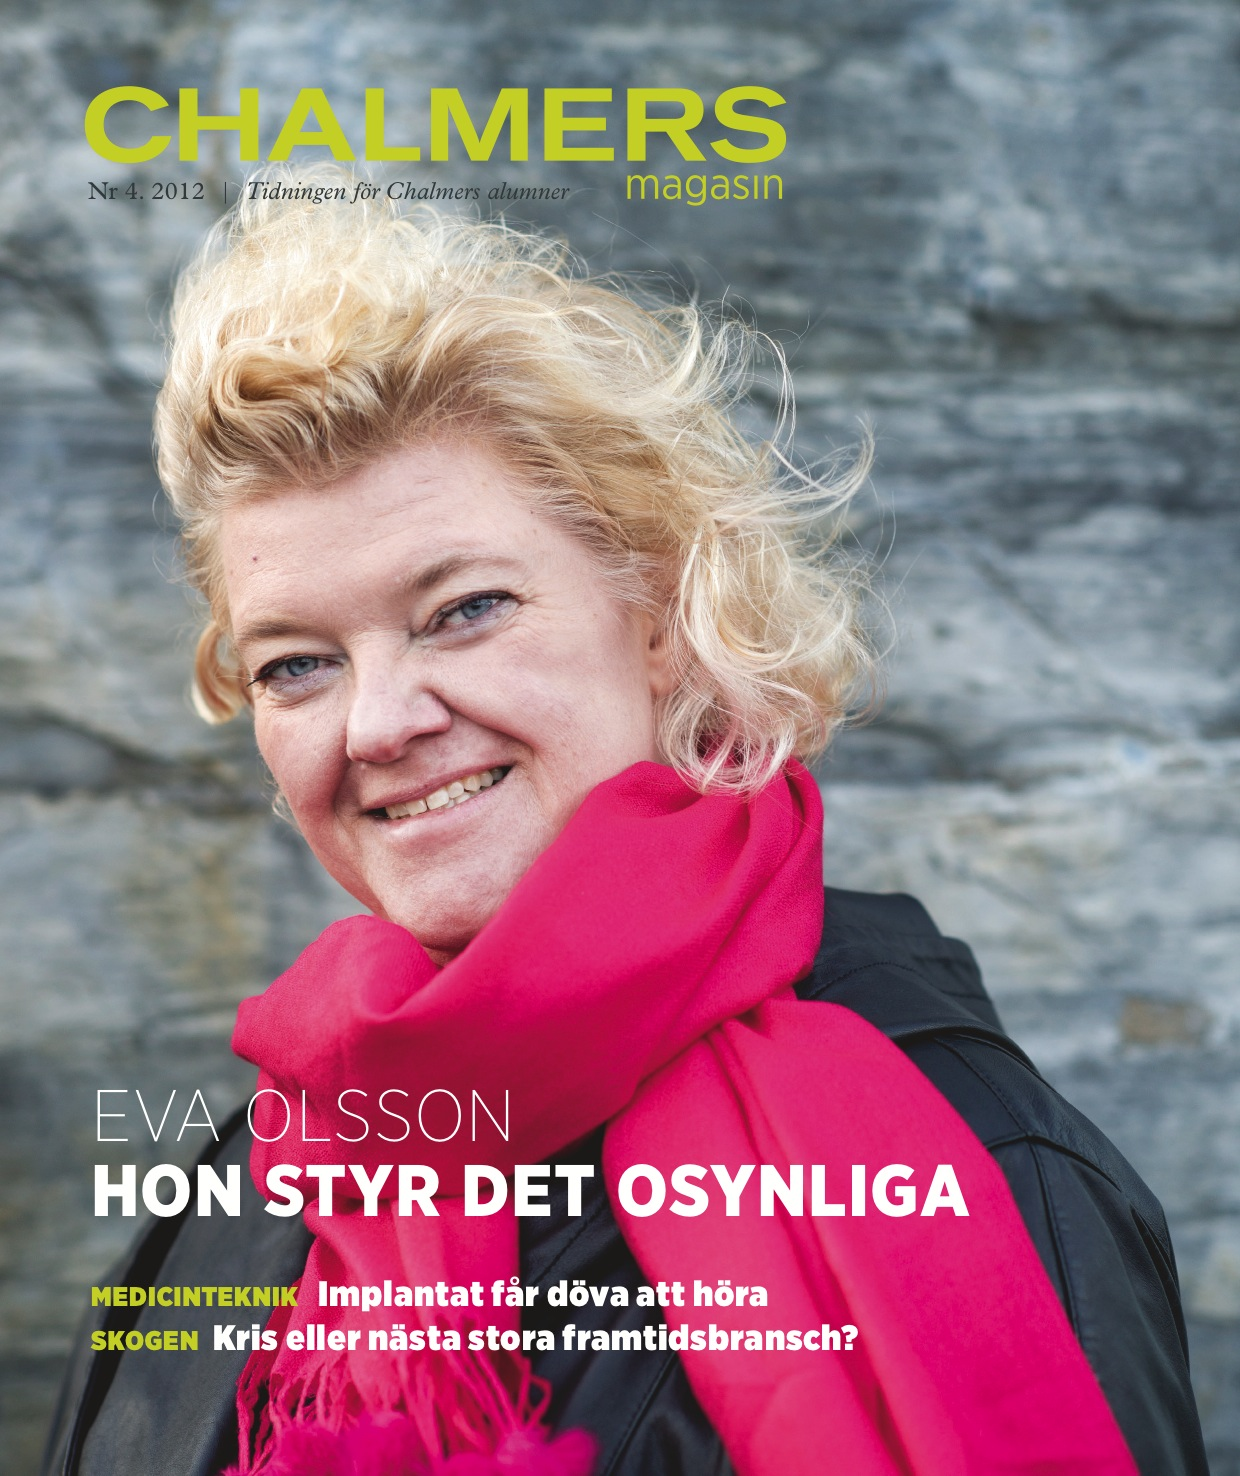 Chalmers Magasin 2012 nr. 4